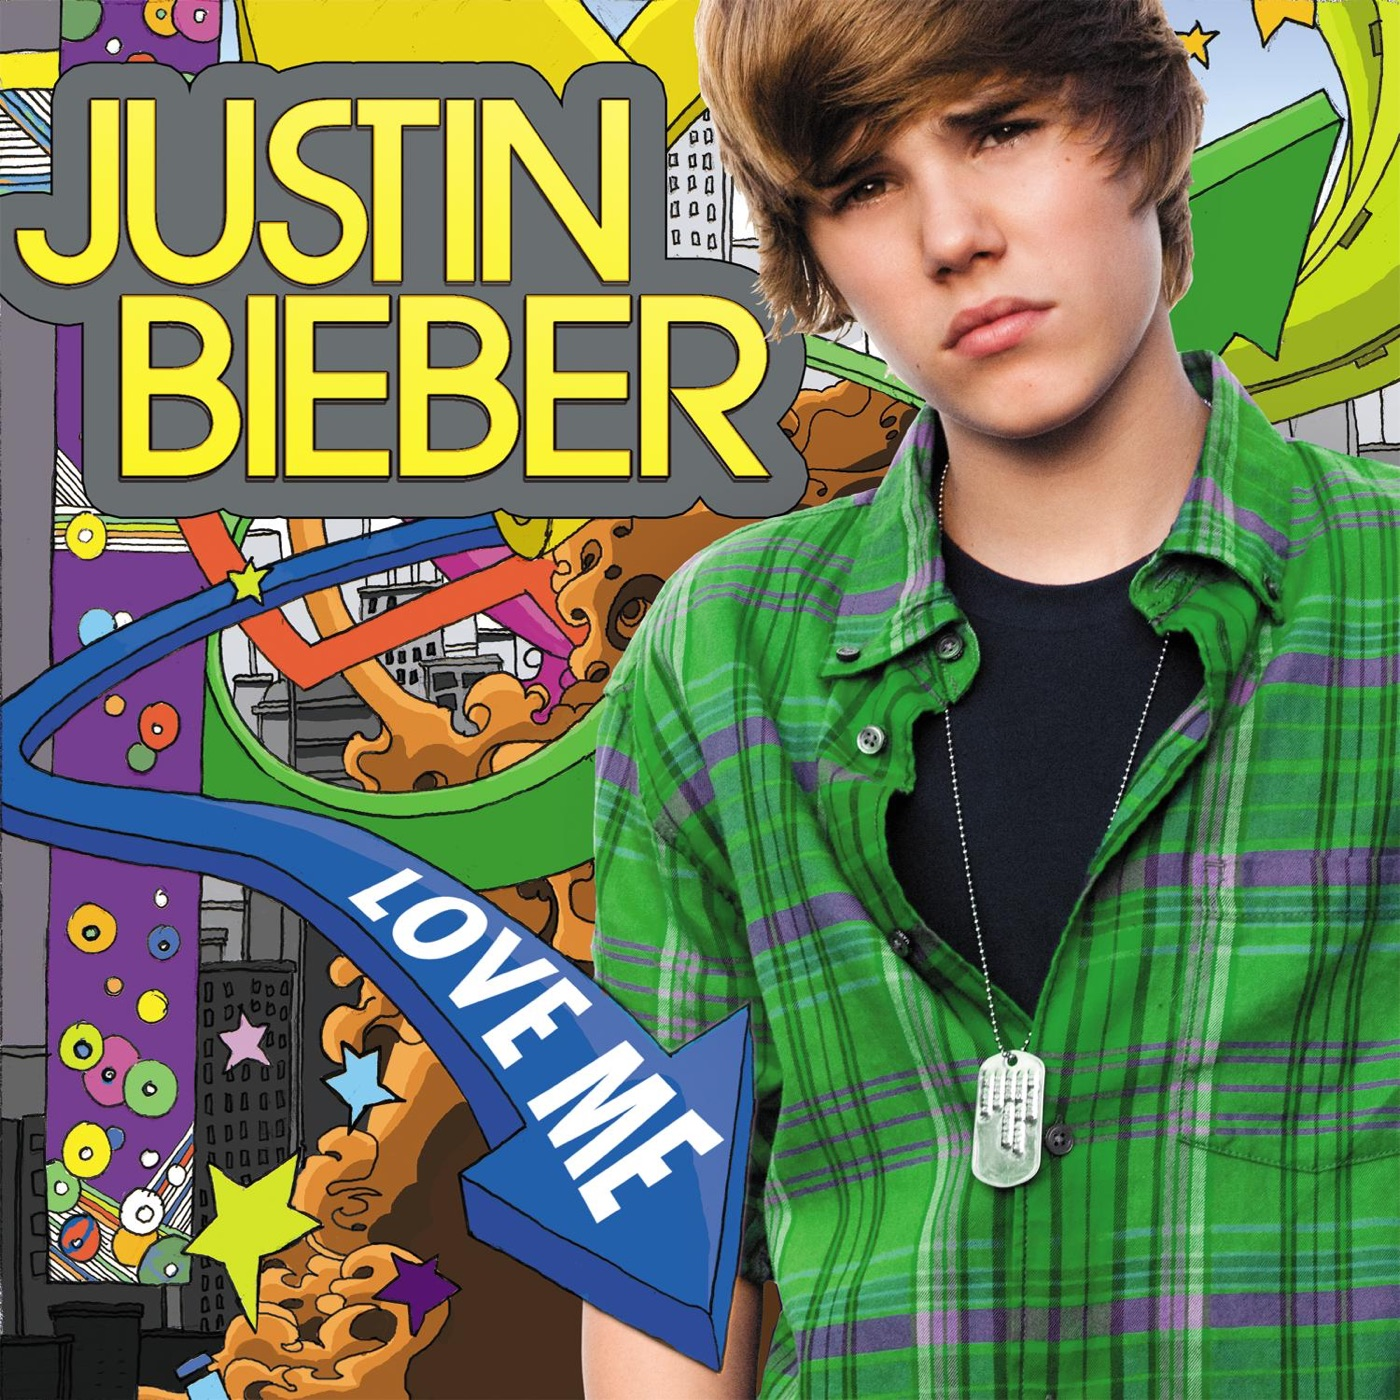 Justin Bieber - Love Me - Single Cover